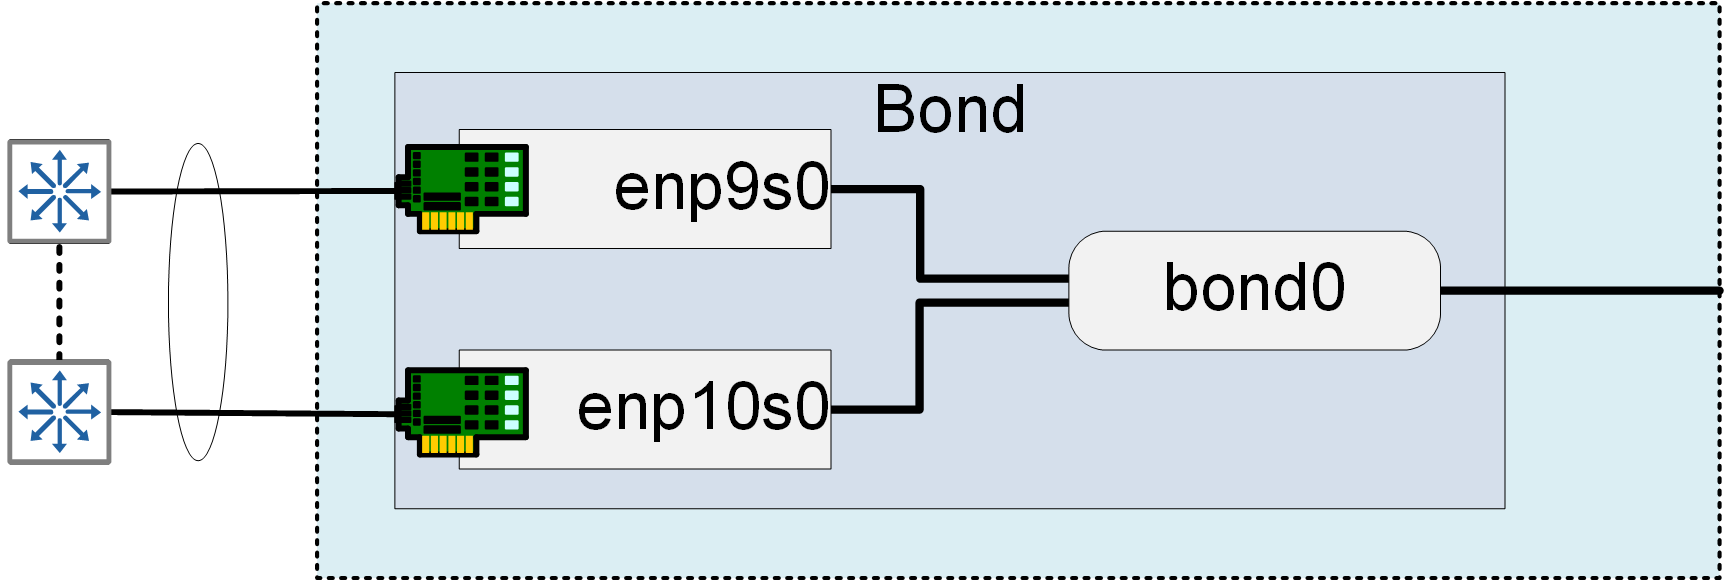 Basic NIC Bonding in RHEL - Cisco Community